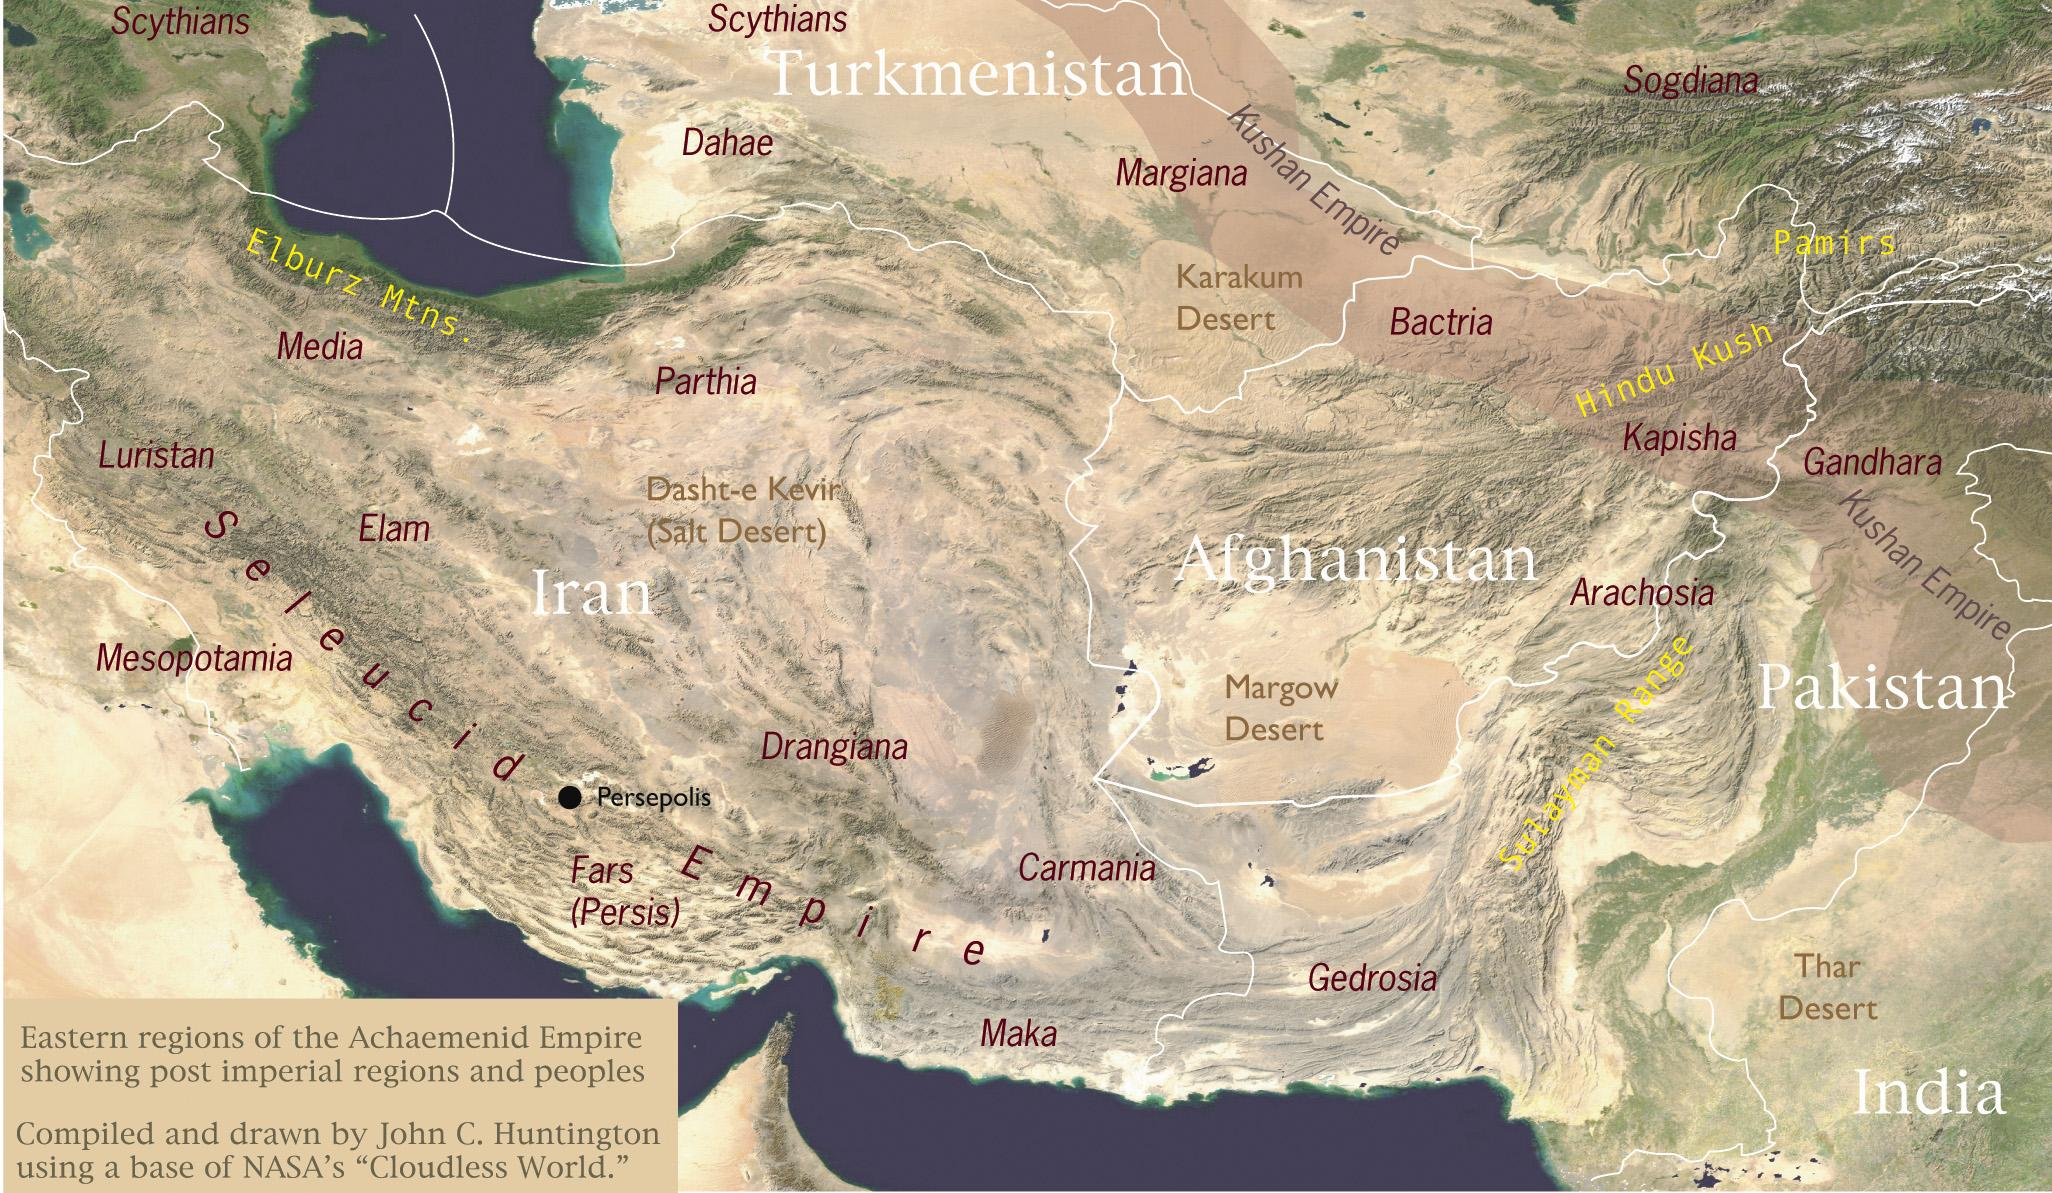 kushan Kushan Empire Map on parthian empire map, choson empire map, sassanid empire map, ancient egypt nubia and kush map, gupta empire map, chola kingdom map, hephthalite empire map, ming dynasty map, frankish kingdom map, timurid empire map, umayyad empire map, afghan empire map, ghana empire map, pallava empire map, union of soviet socialist republics map, kangxi empire map, delhi sultanate map, khmer empire map, ancient persia empire map, greco-bactrian empire map,